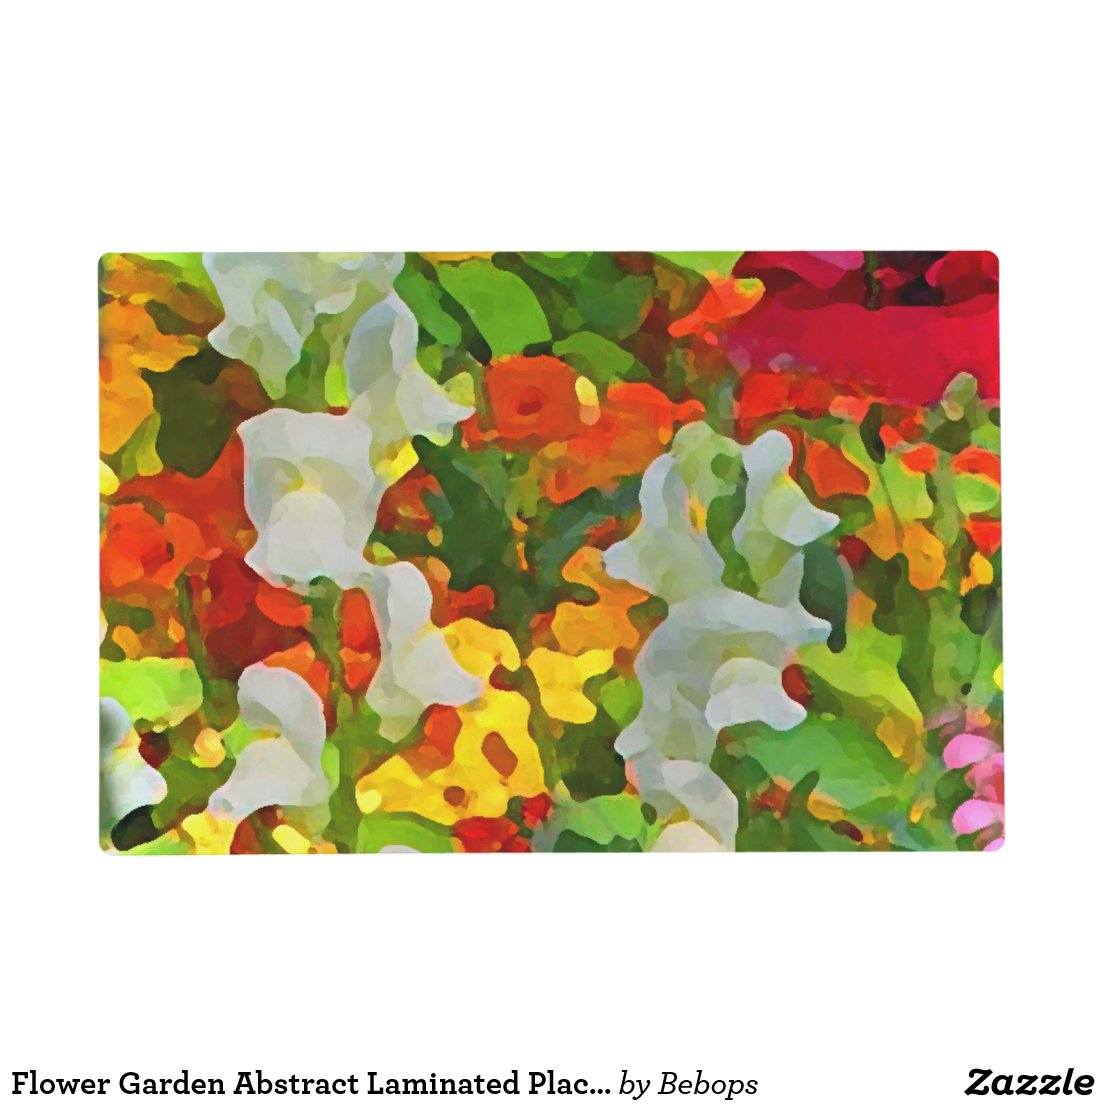 Flower Garden Abstract Laminated Placemat